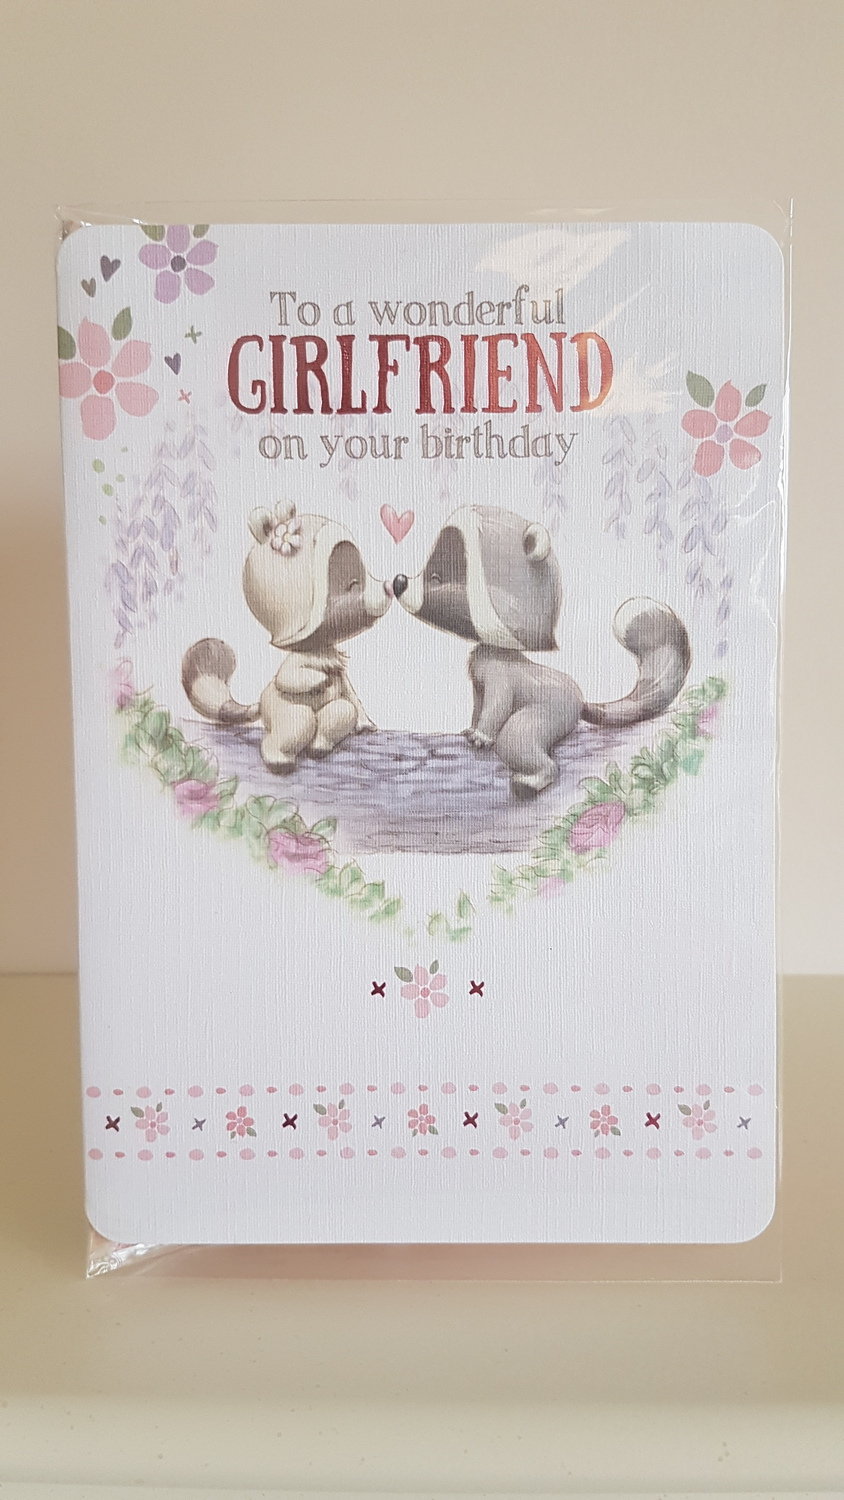 Girlfriend Pink Hearts Flowers Birthday Card